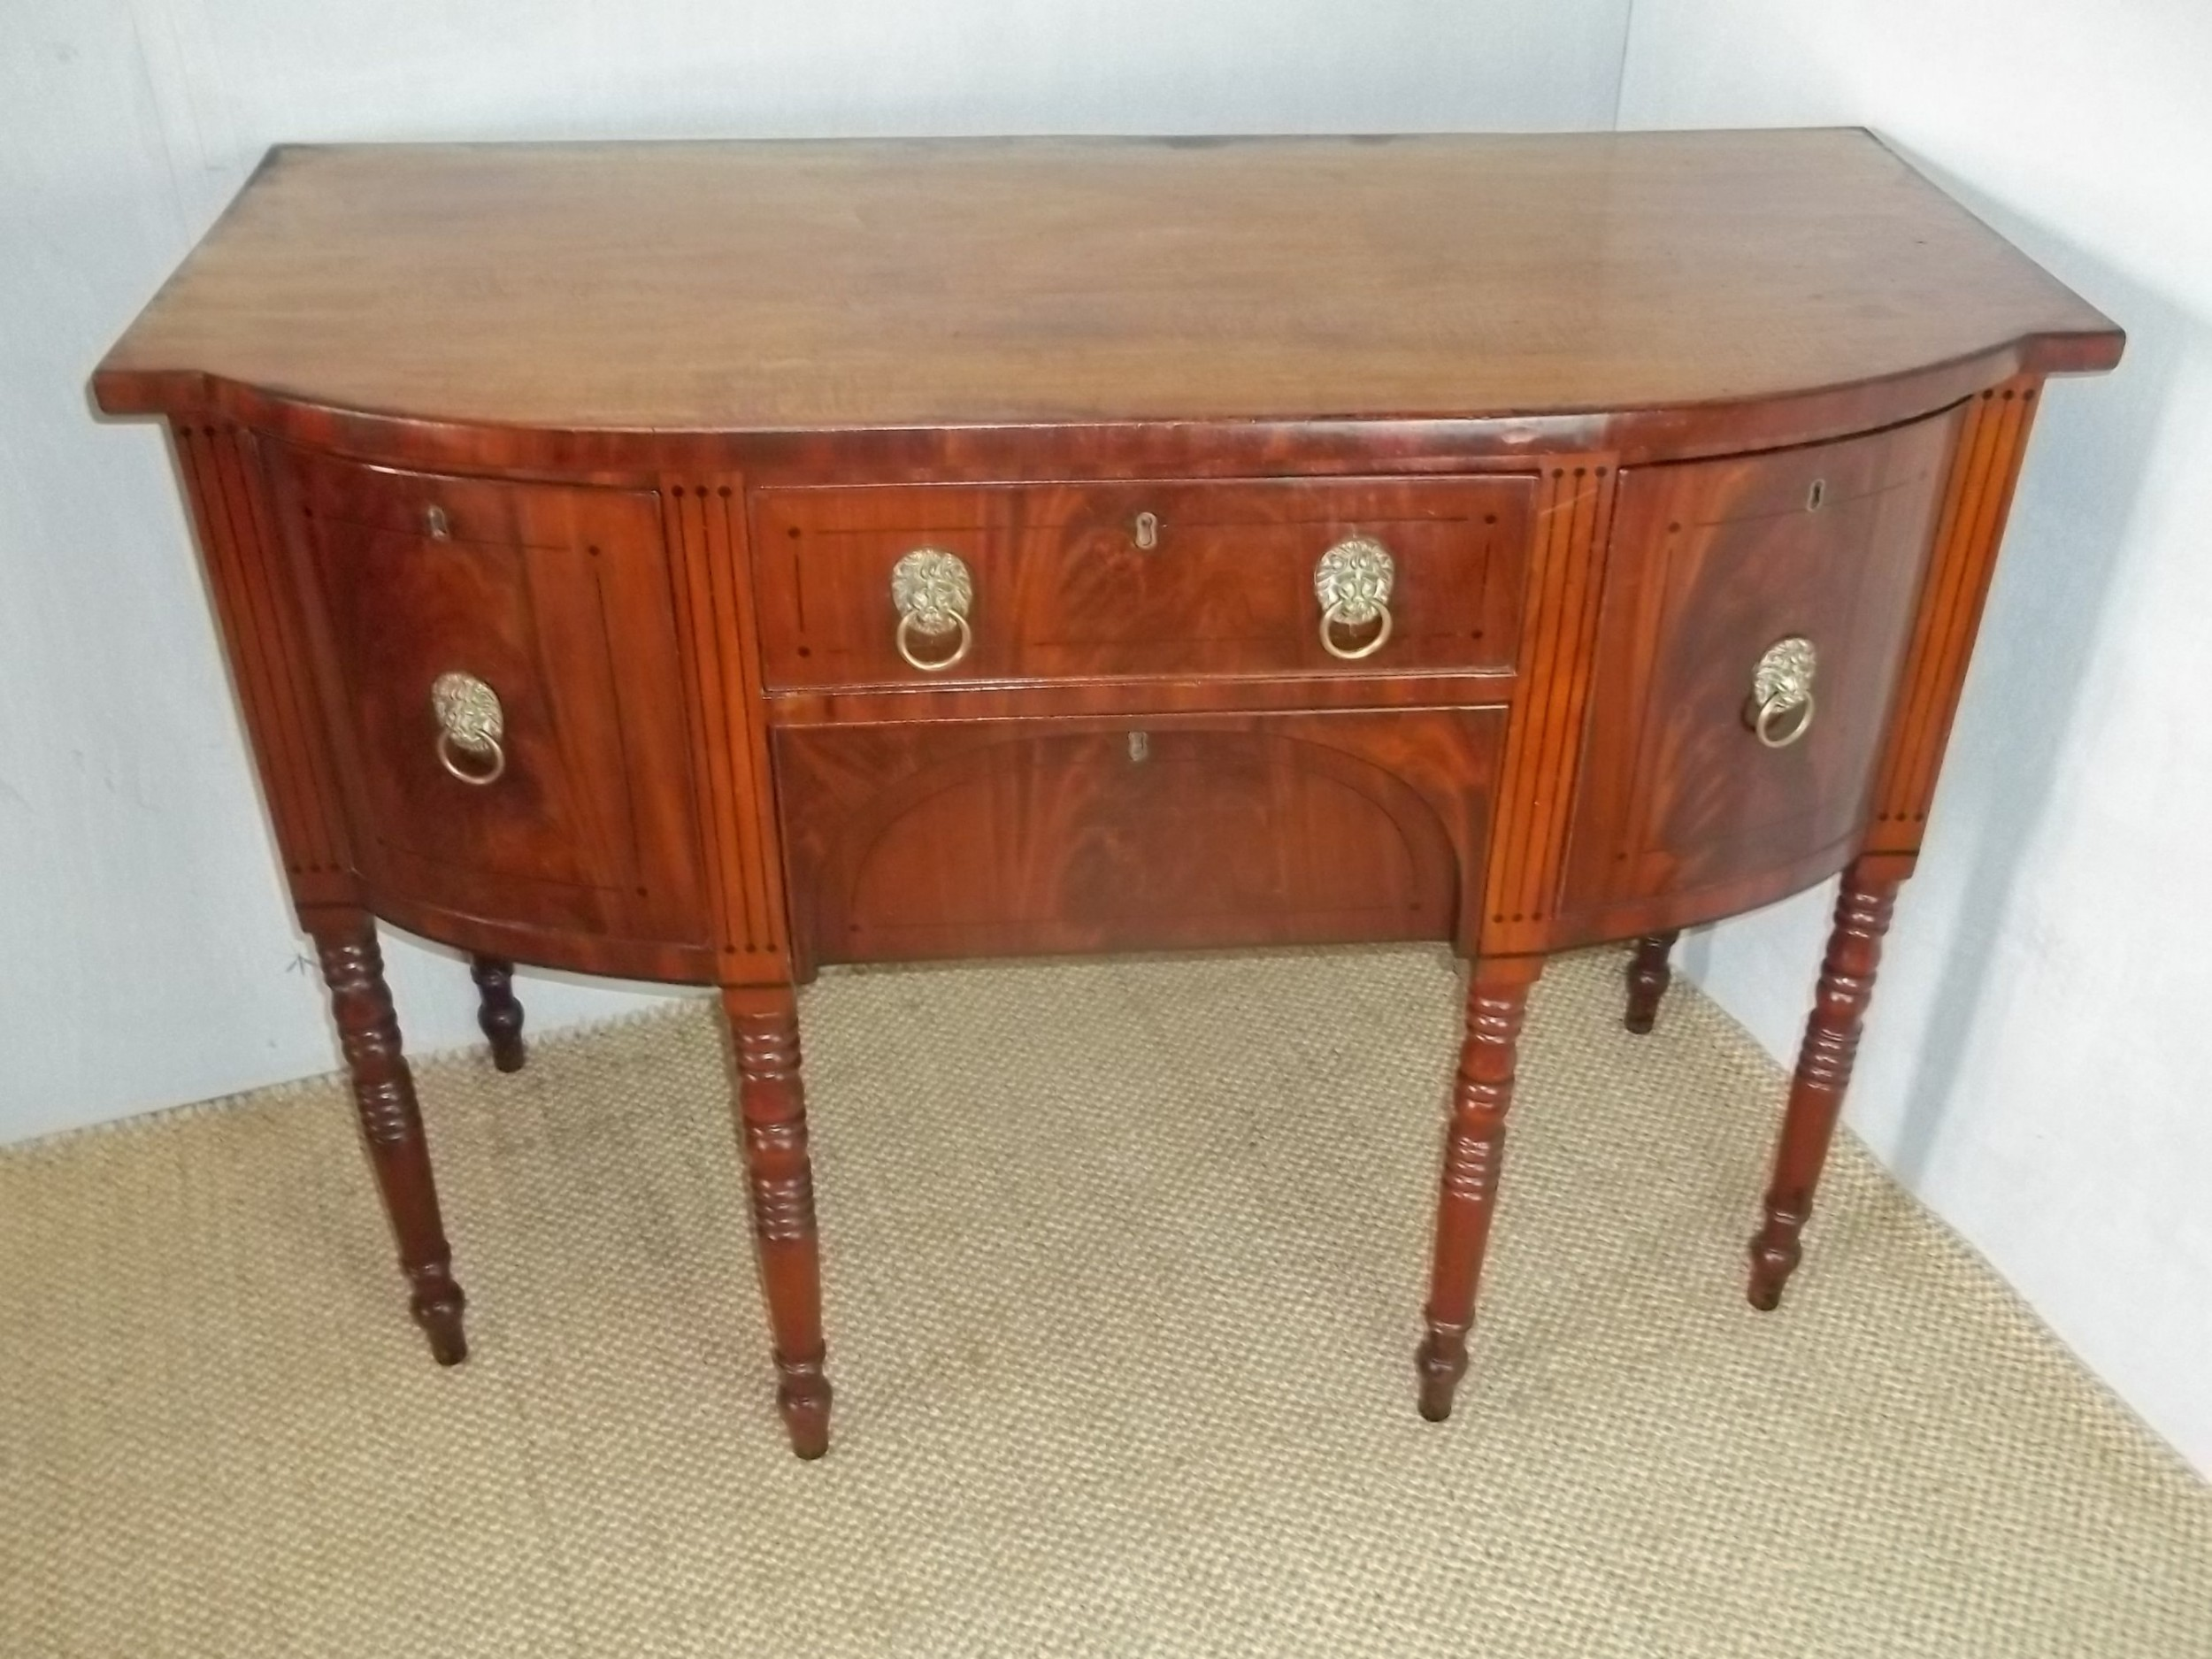 superb quality small regency mahogany bowfront inlaid sideboard serving table of bow break front c1810